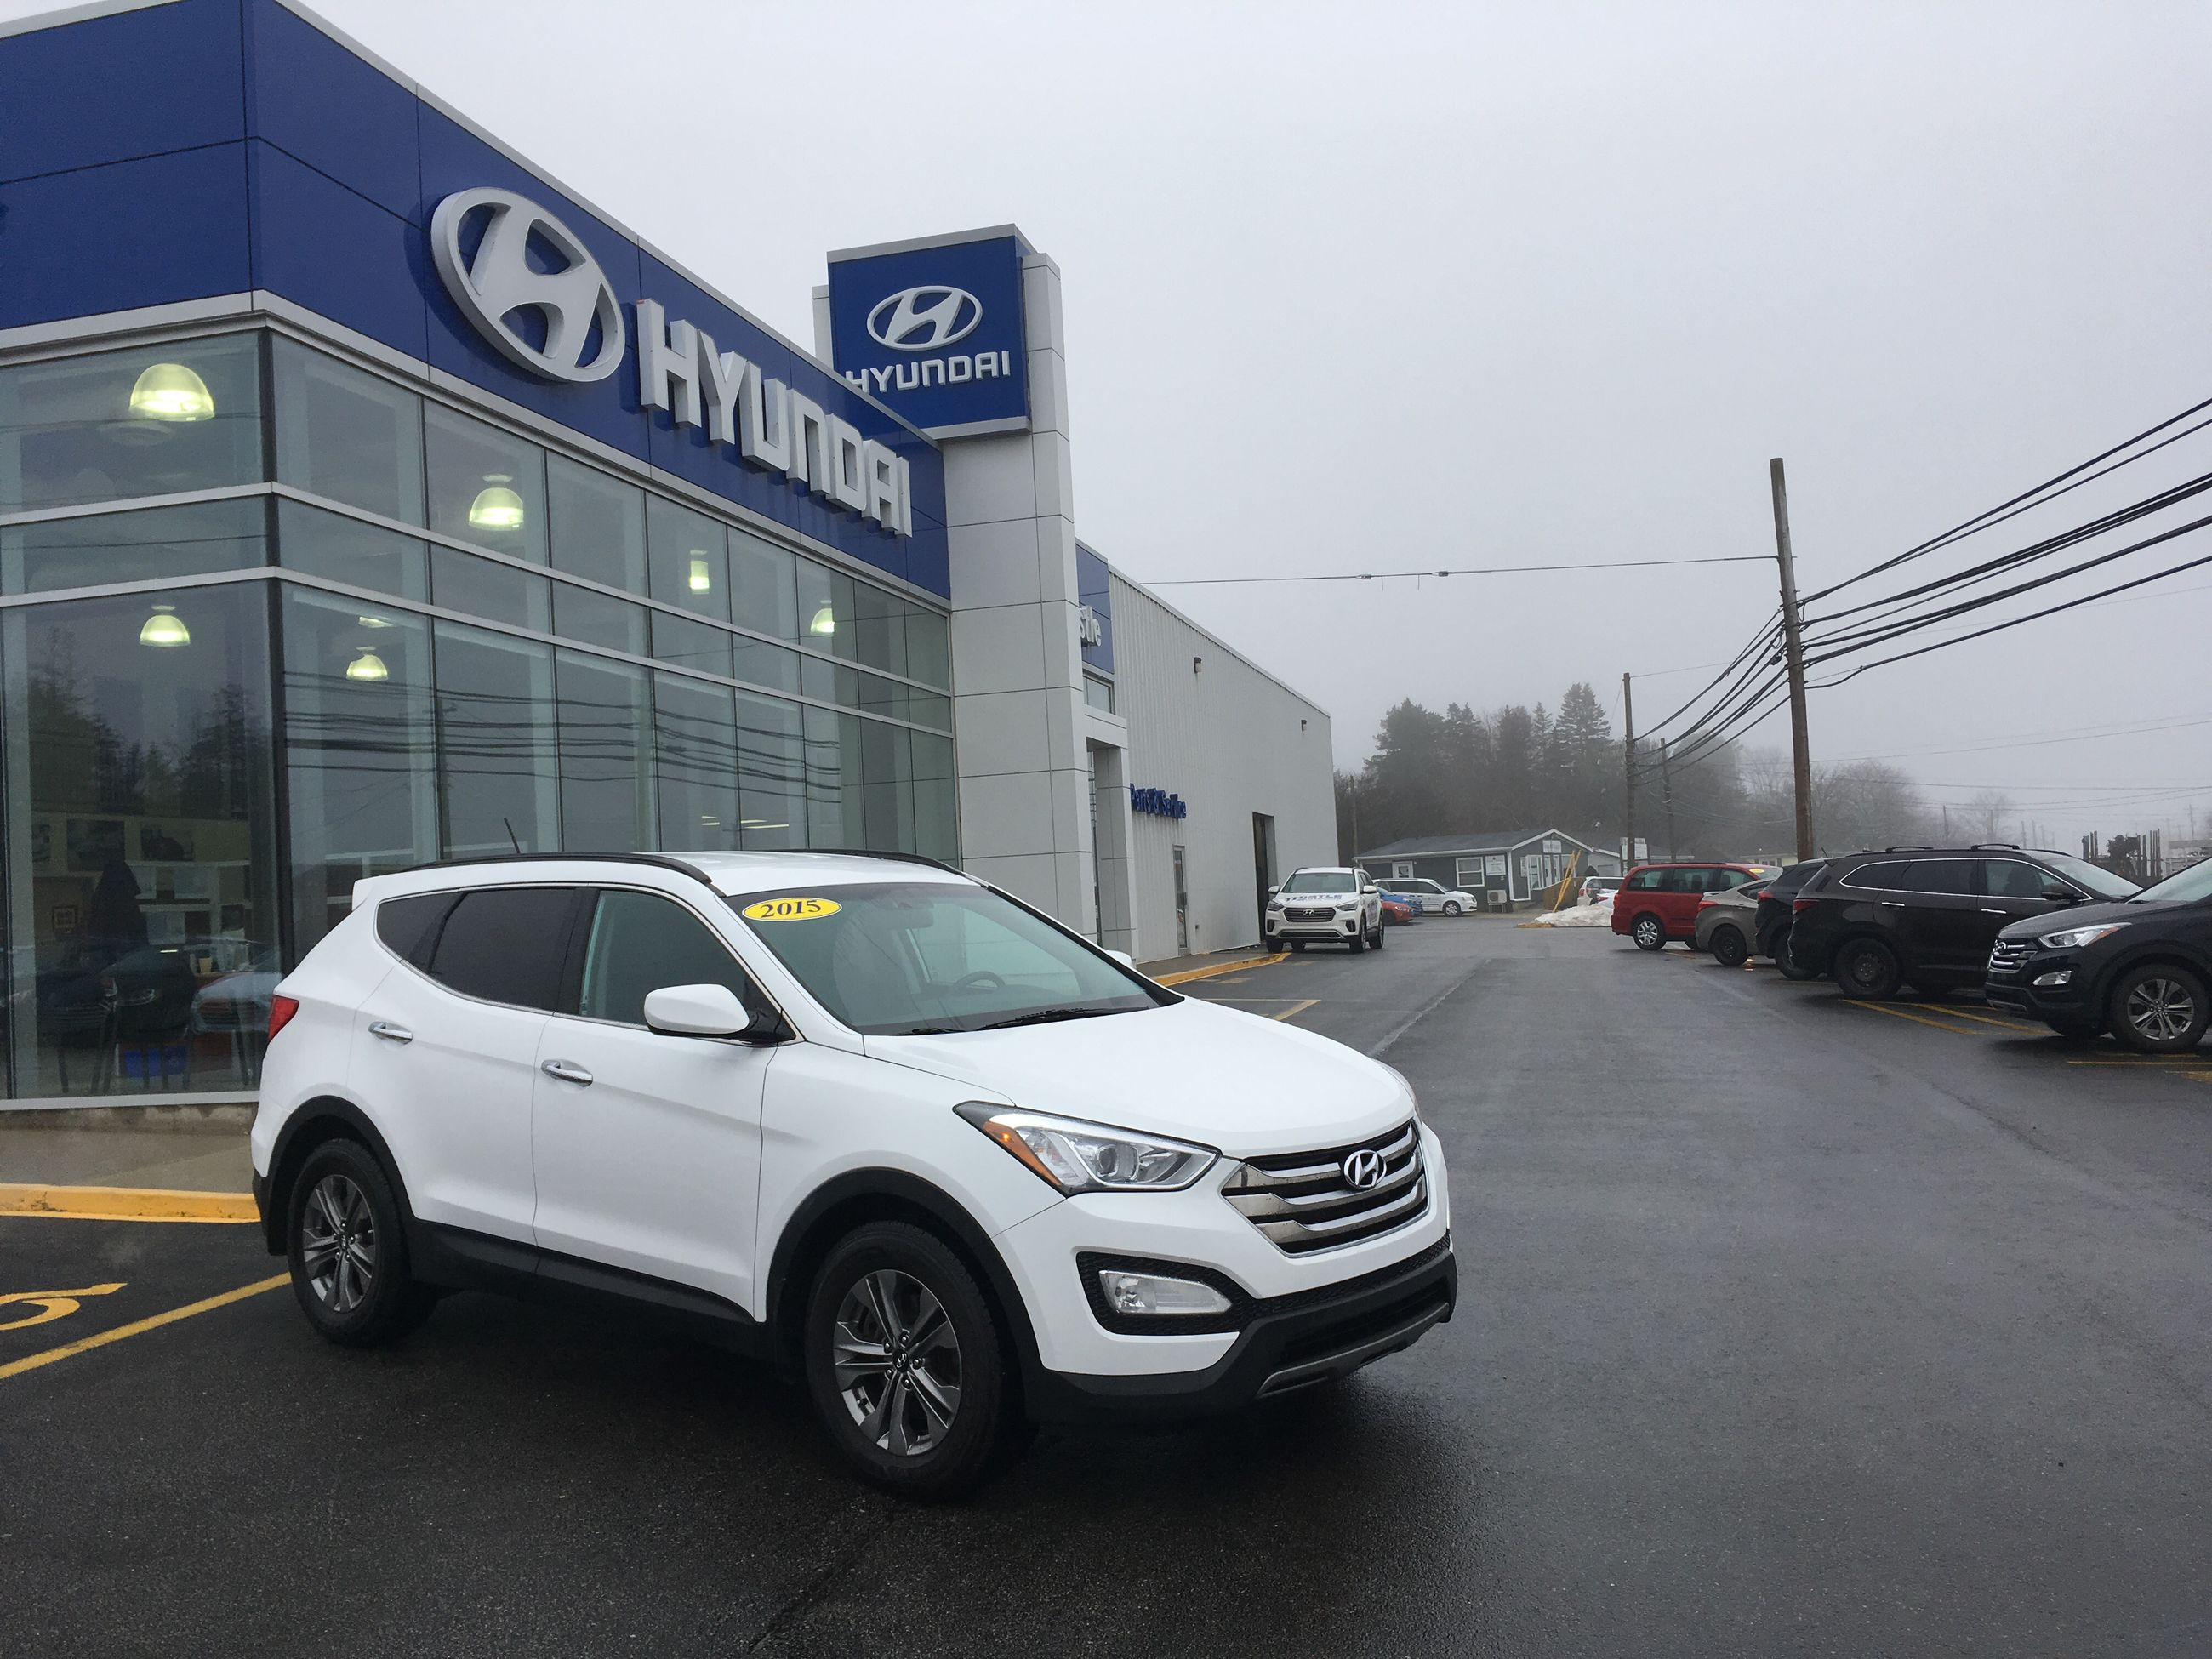 chicago a fe hyundai facelift thinks santa got it sport sexy in news s